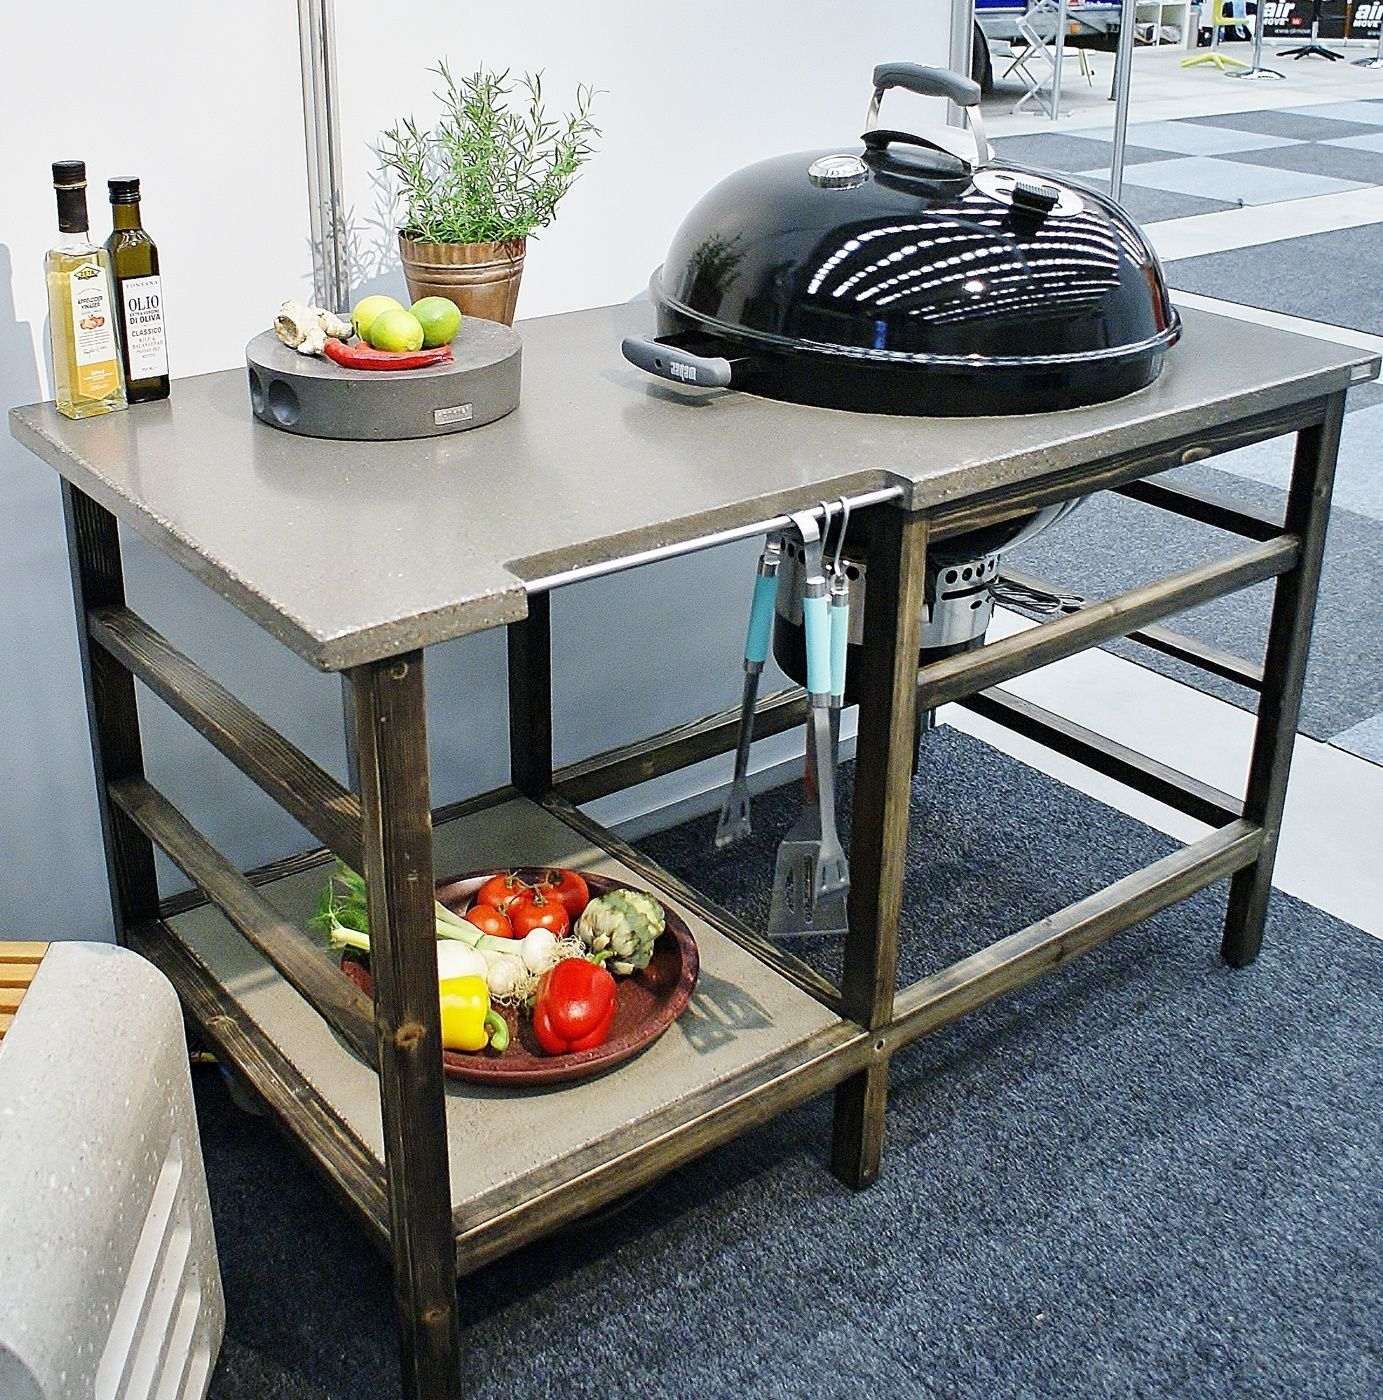 grillbord utegrill betong klotgrill weber grill. Black Bedroom Furniture Sets. Home Design Ideas